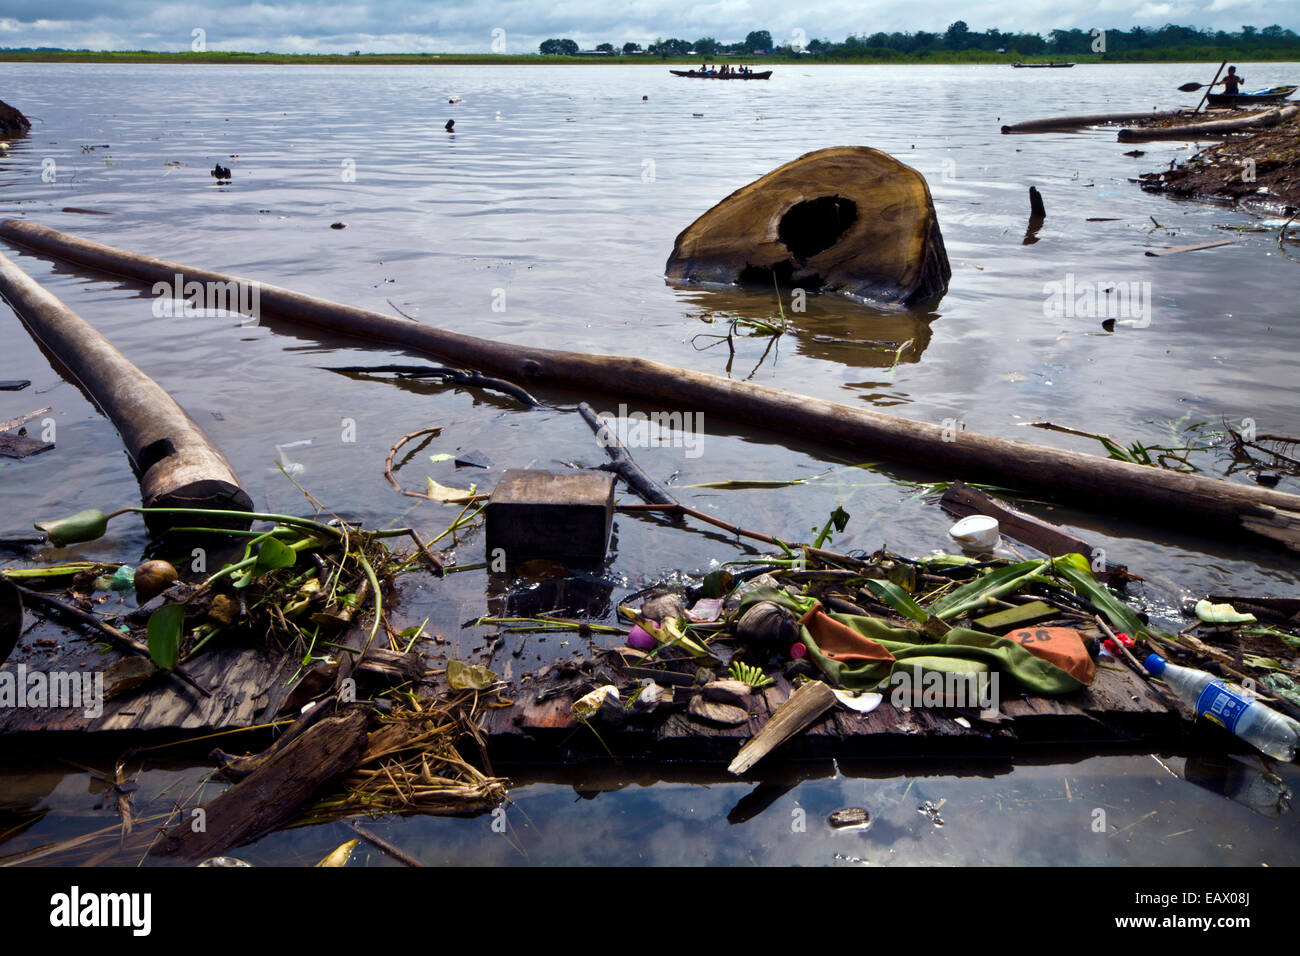 Pollution, logs and rubbish line the shore of the Amazon River near logging mills. - Stock Image